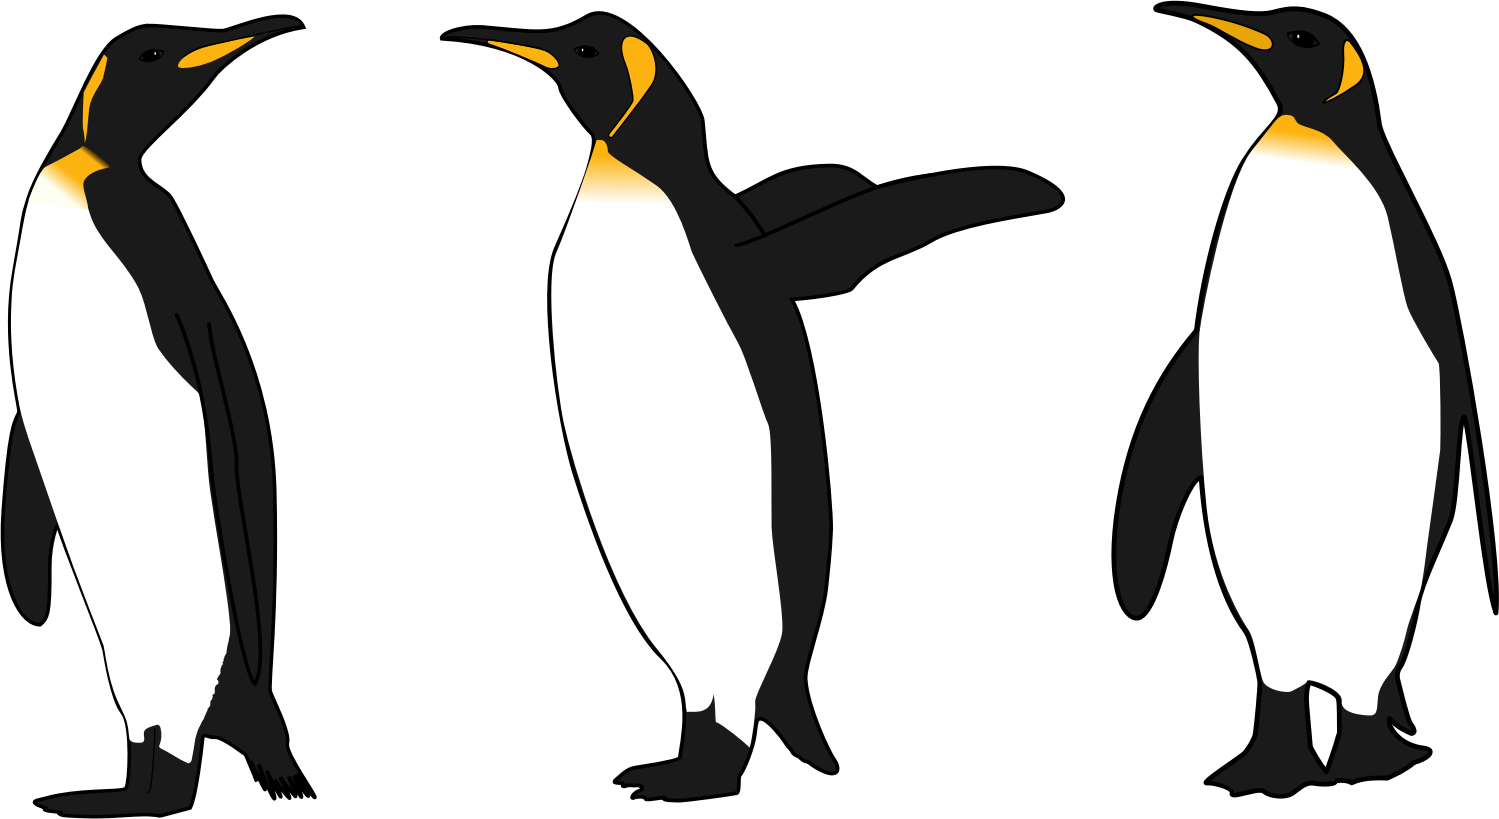 Three king penguins big. Penguin clipart realistic image library download